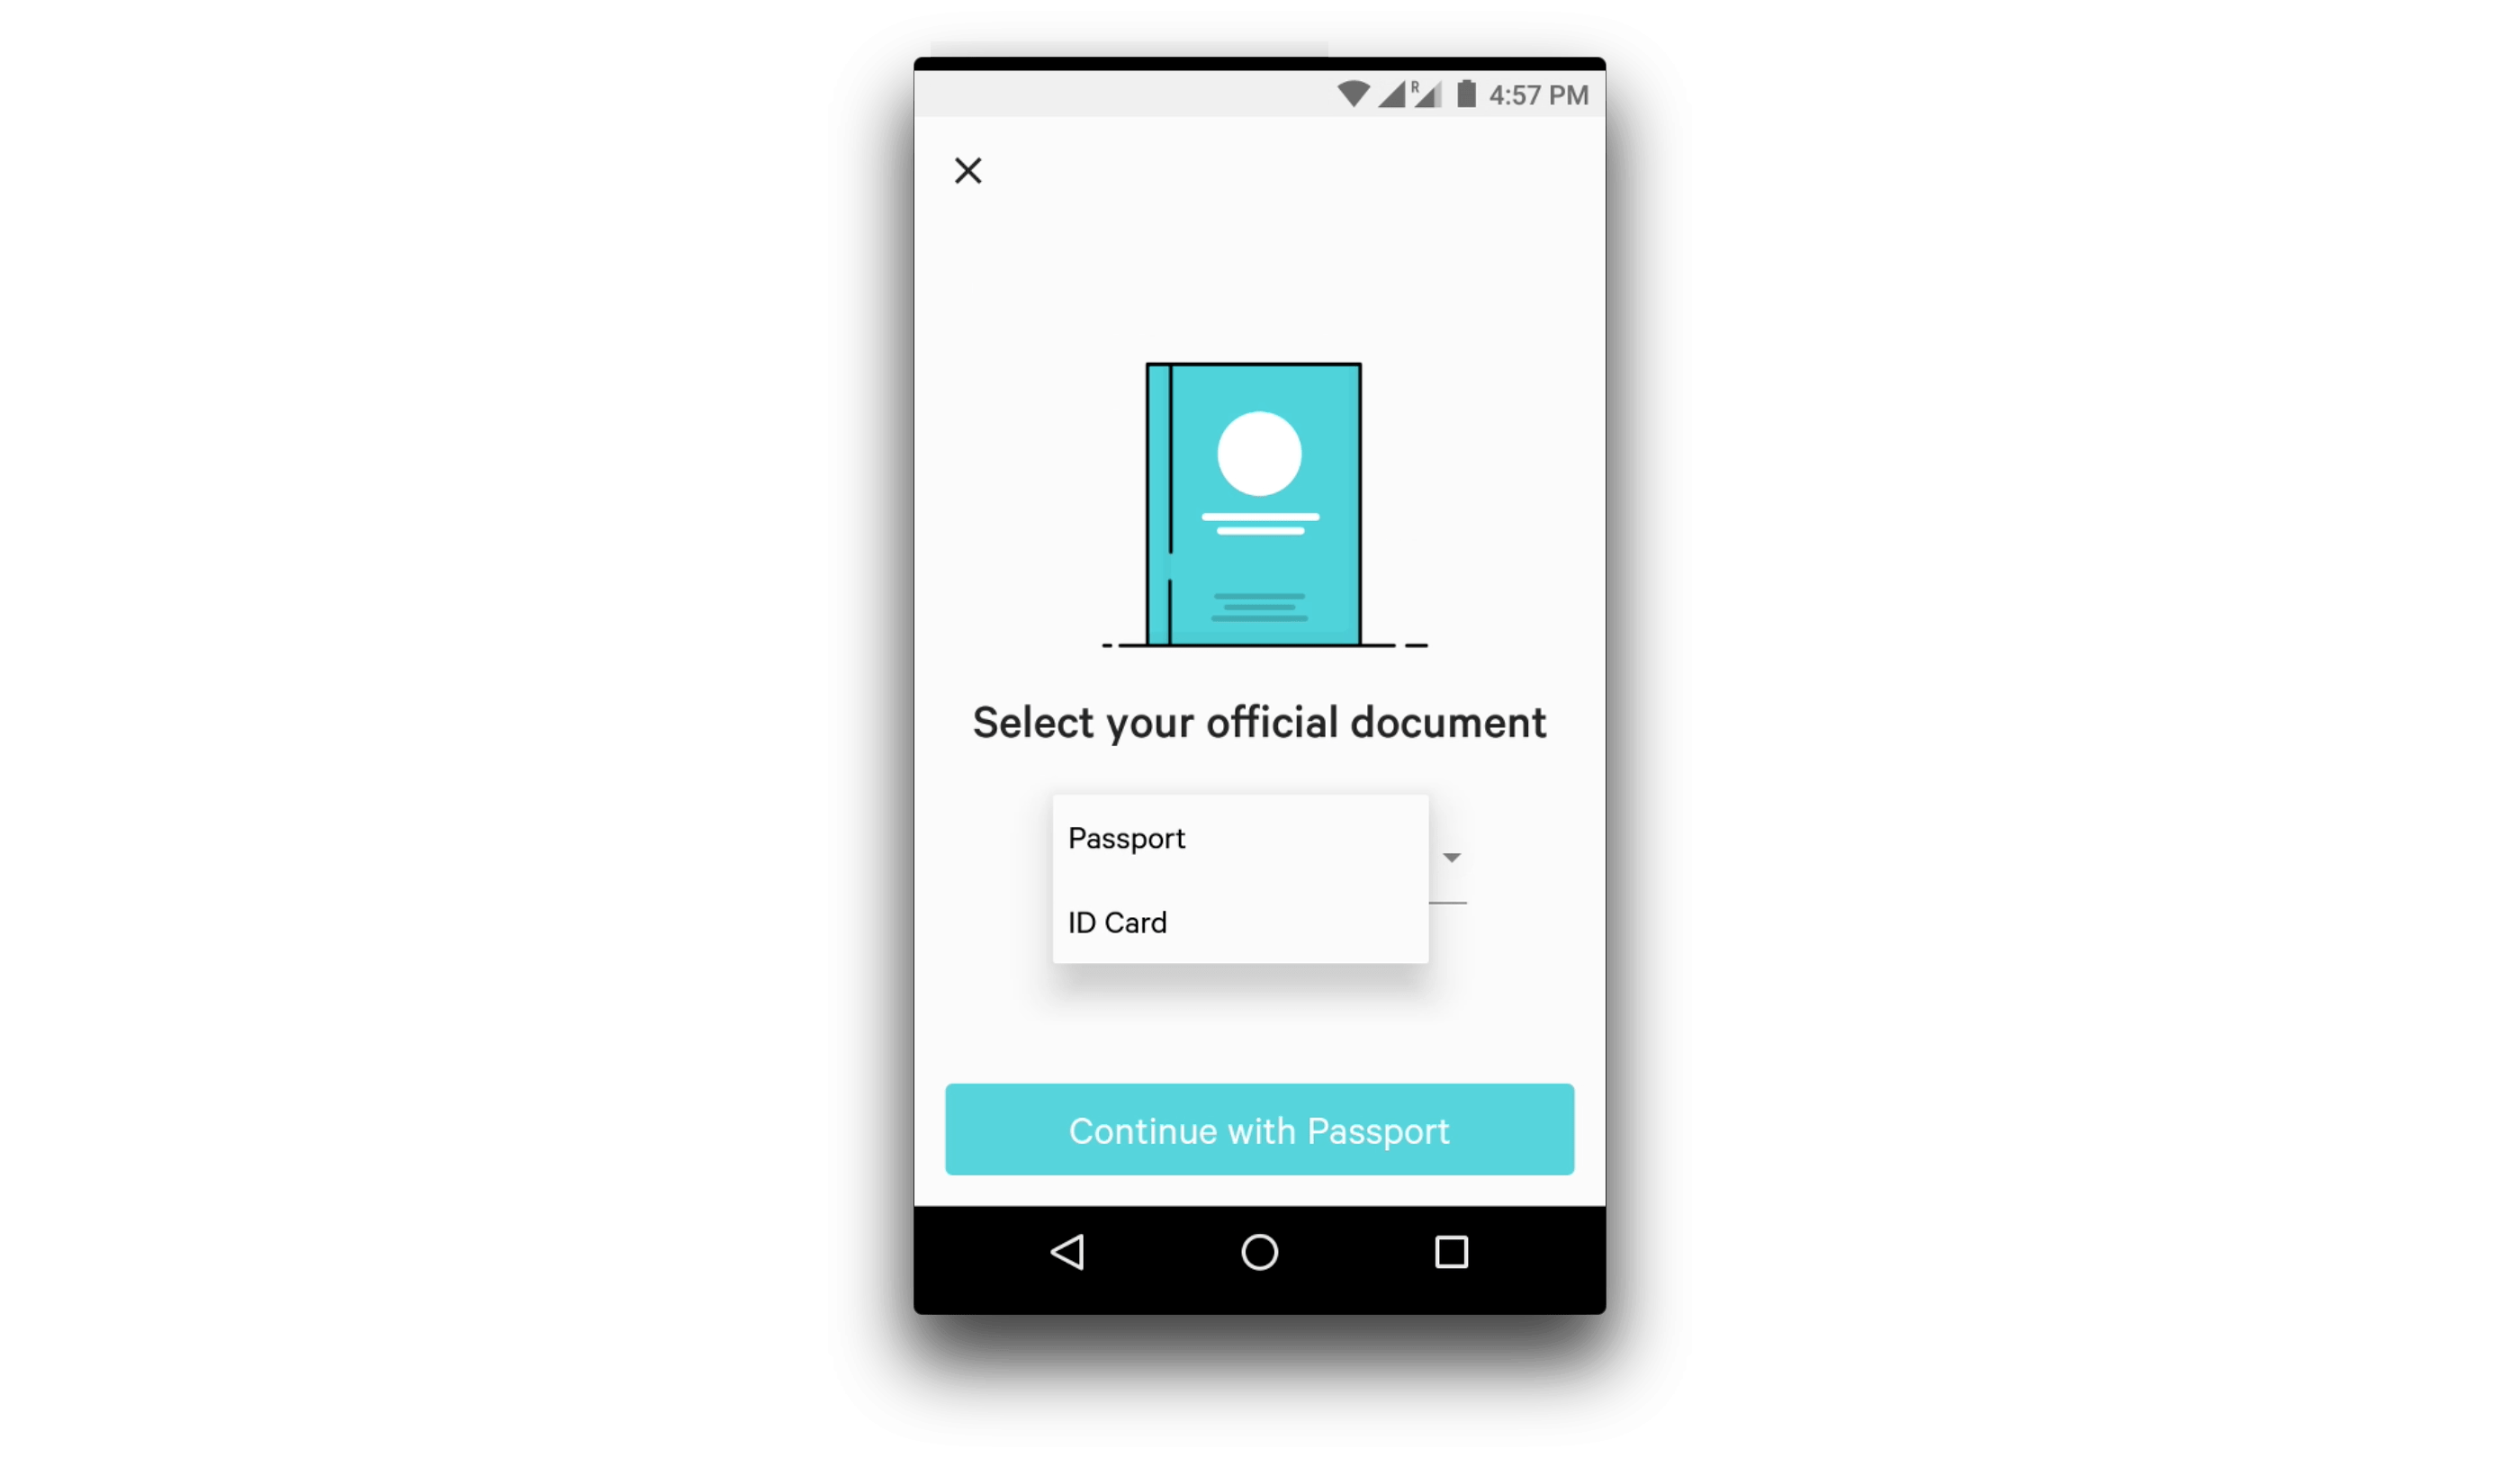 confirm your identity in the N26 app